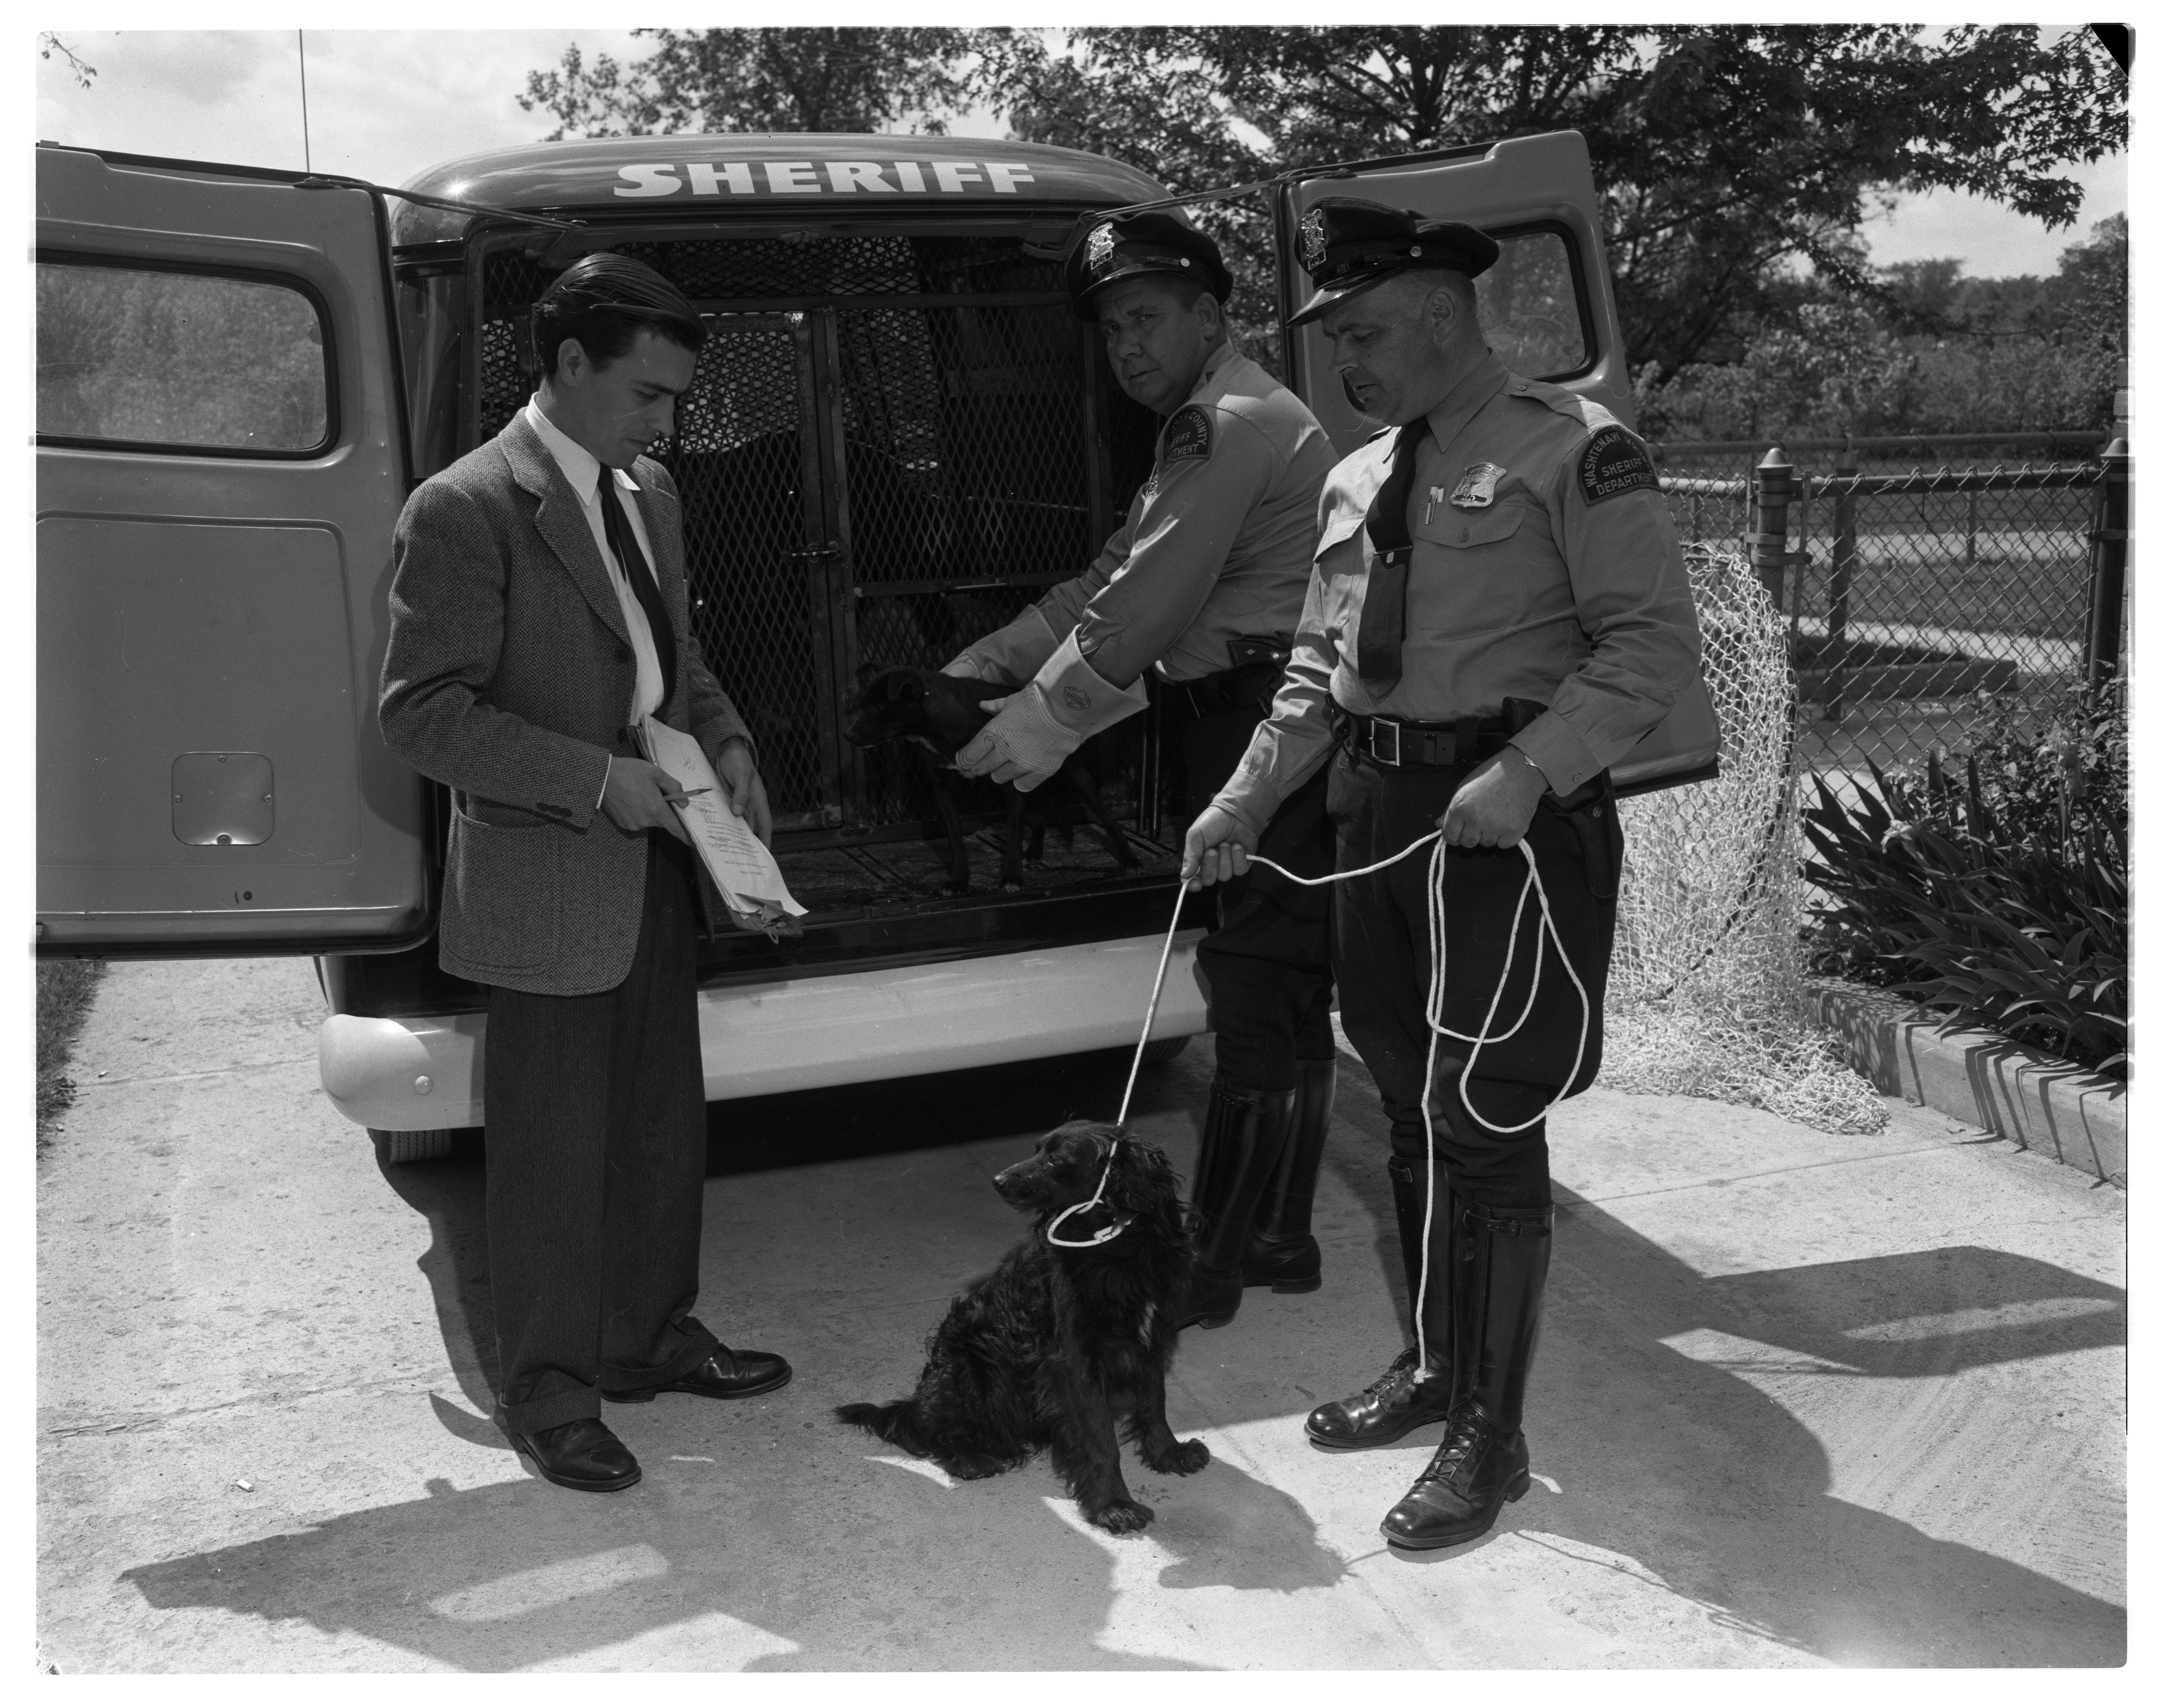 Sheriff's Department Delivers Lost Dog to Humane Society Shelter, May 1957 image